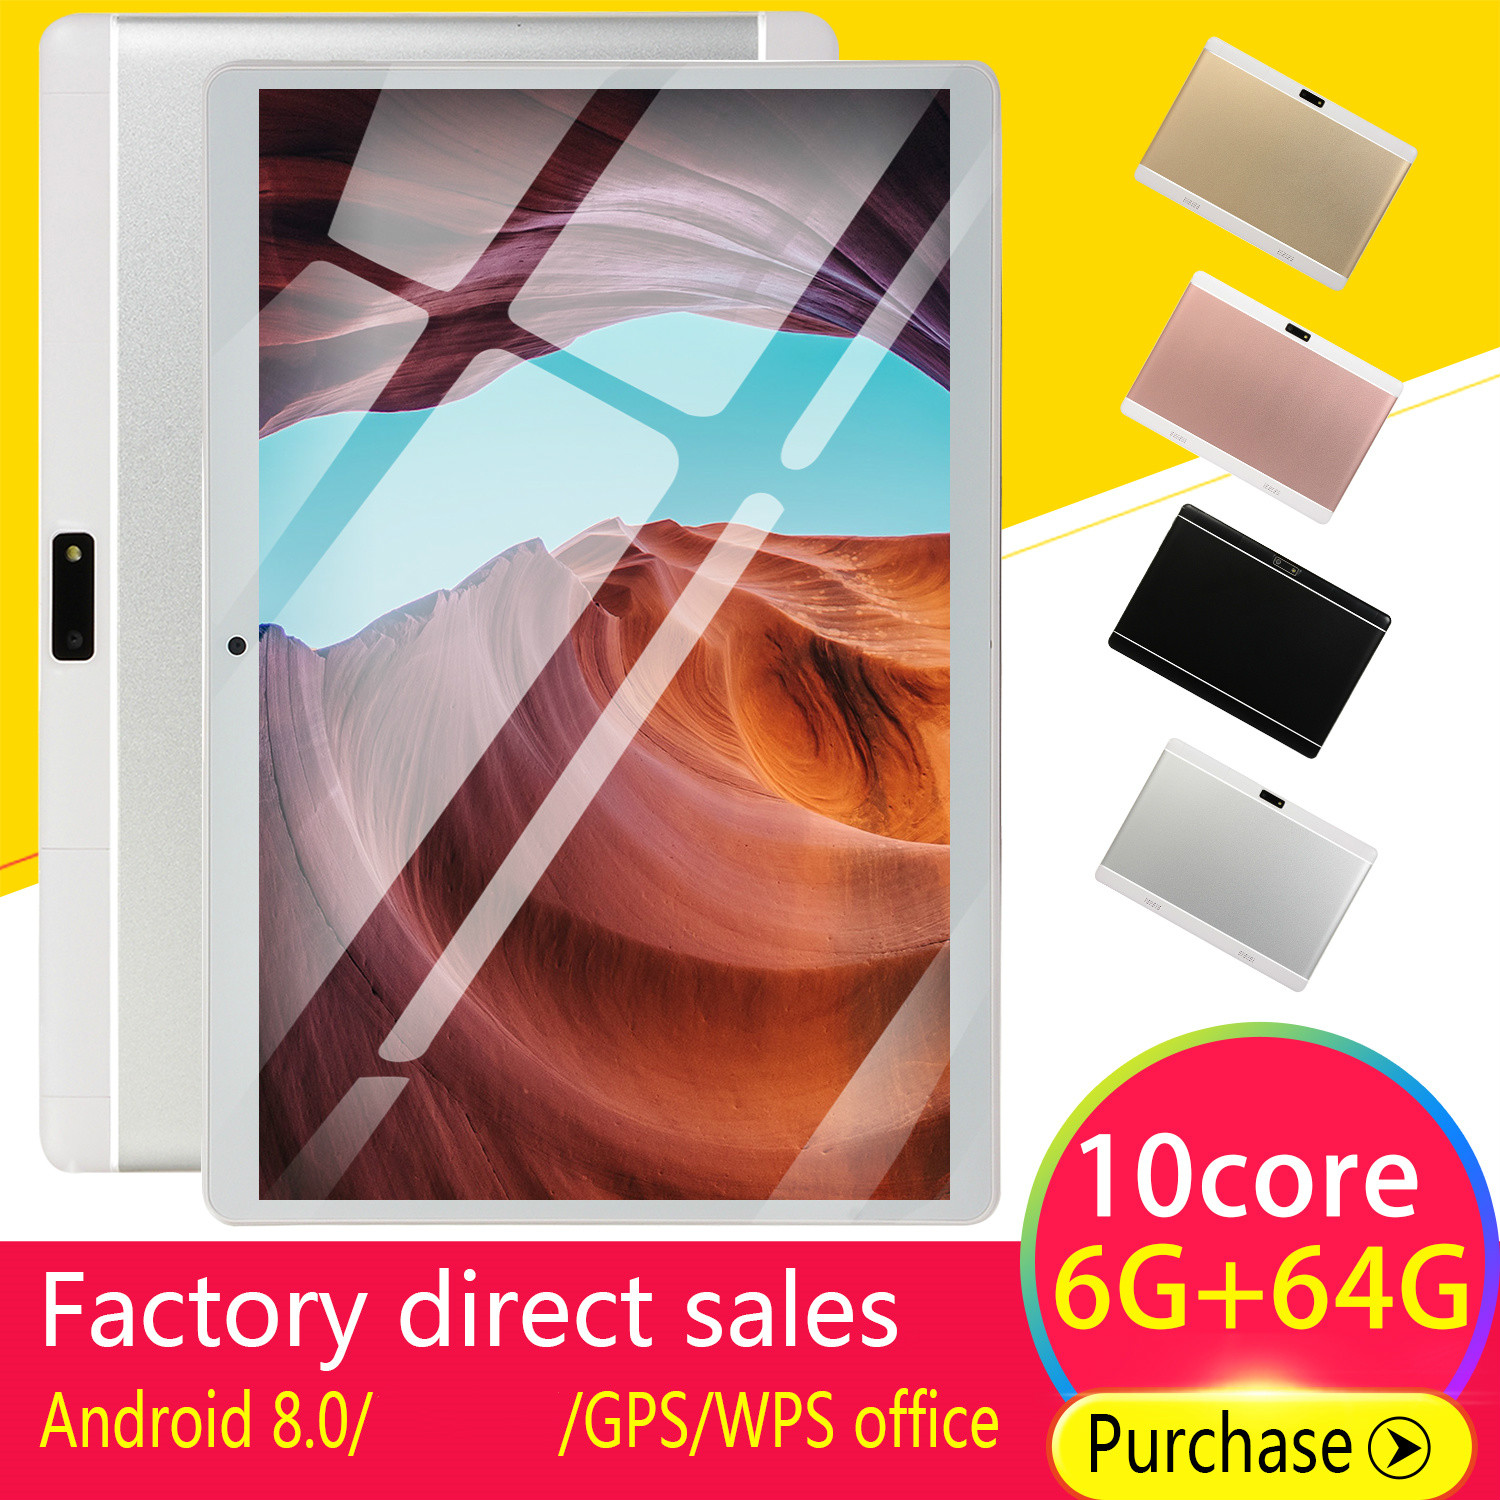 New  2020 WiFi Tablet  Screen 10\ Inch Ten Core 6G+64G  Dual SIM Dual Camera Rear Android8.0   GPS